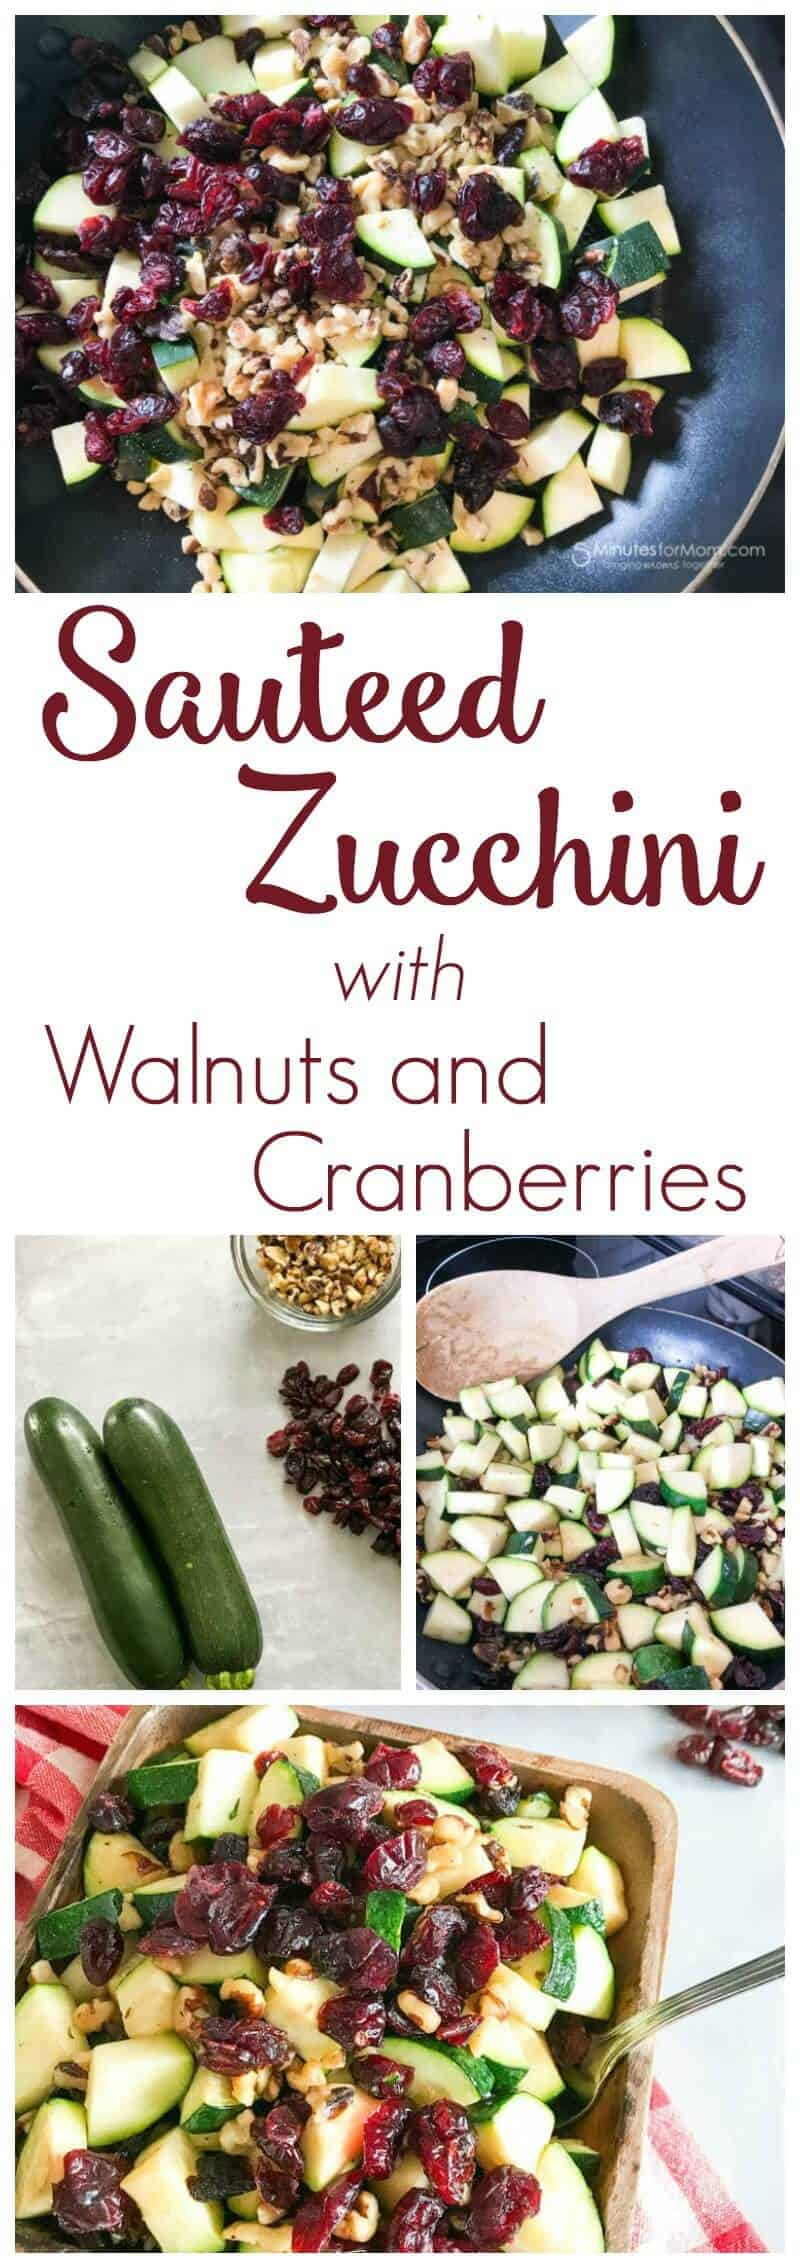 Sauteed Zucchini with Walnuts and Cranberries Recipe - Easy Side Dish For Dinner Parties